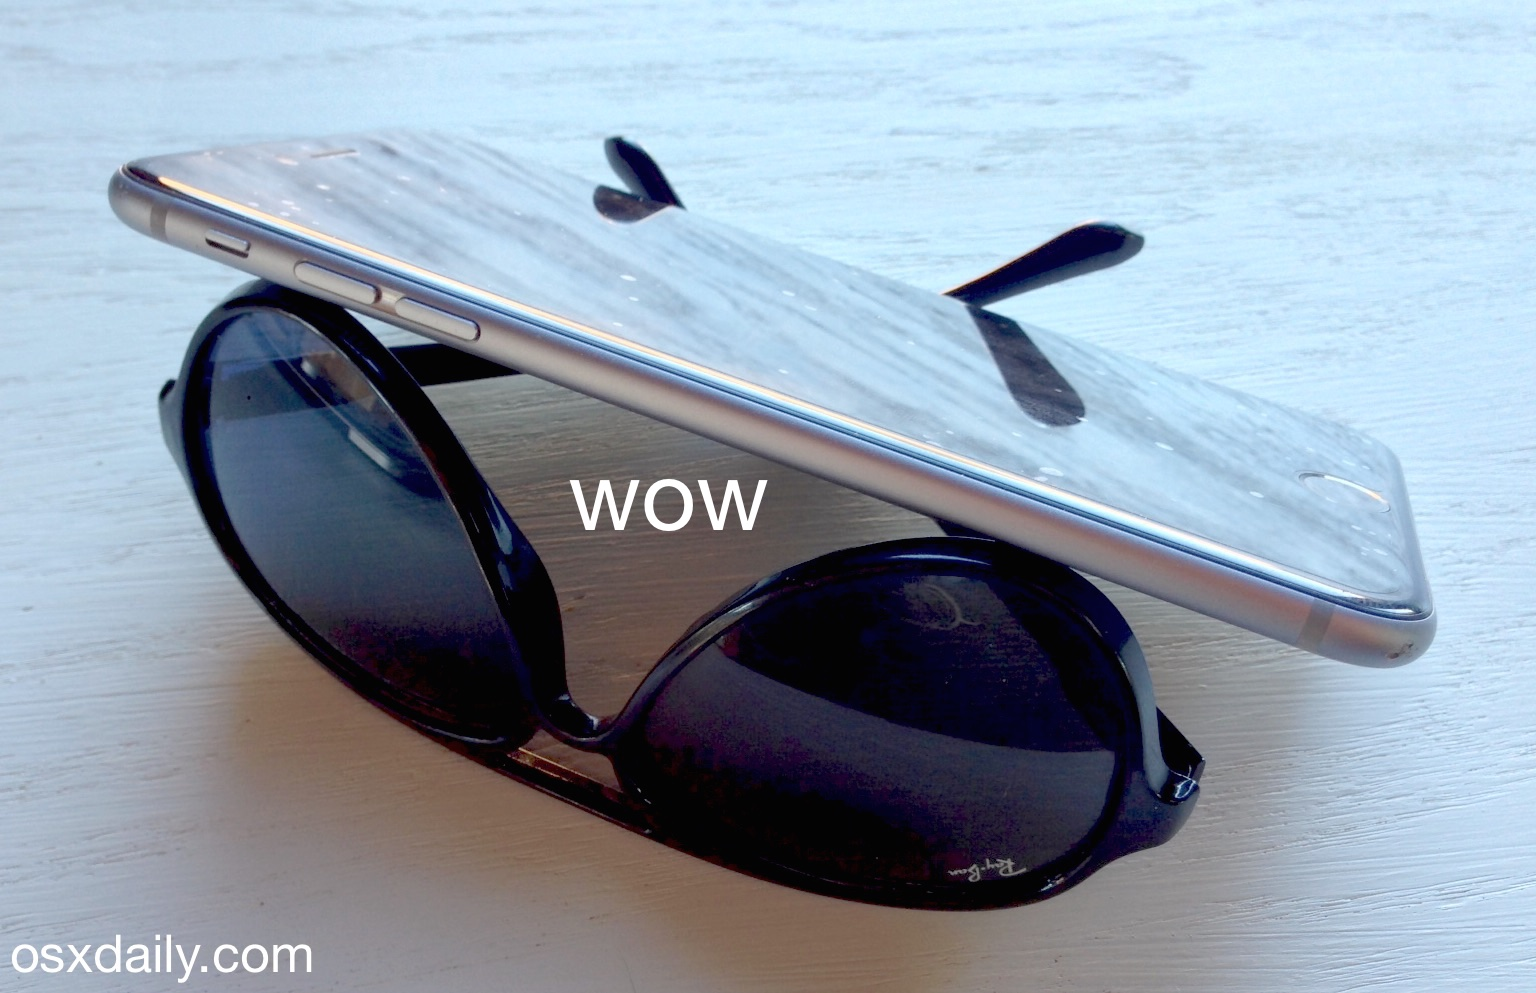 Use sunglasses as an iPhone stand, wow, amazing